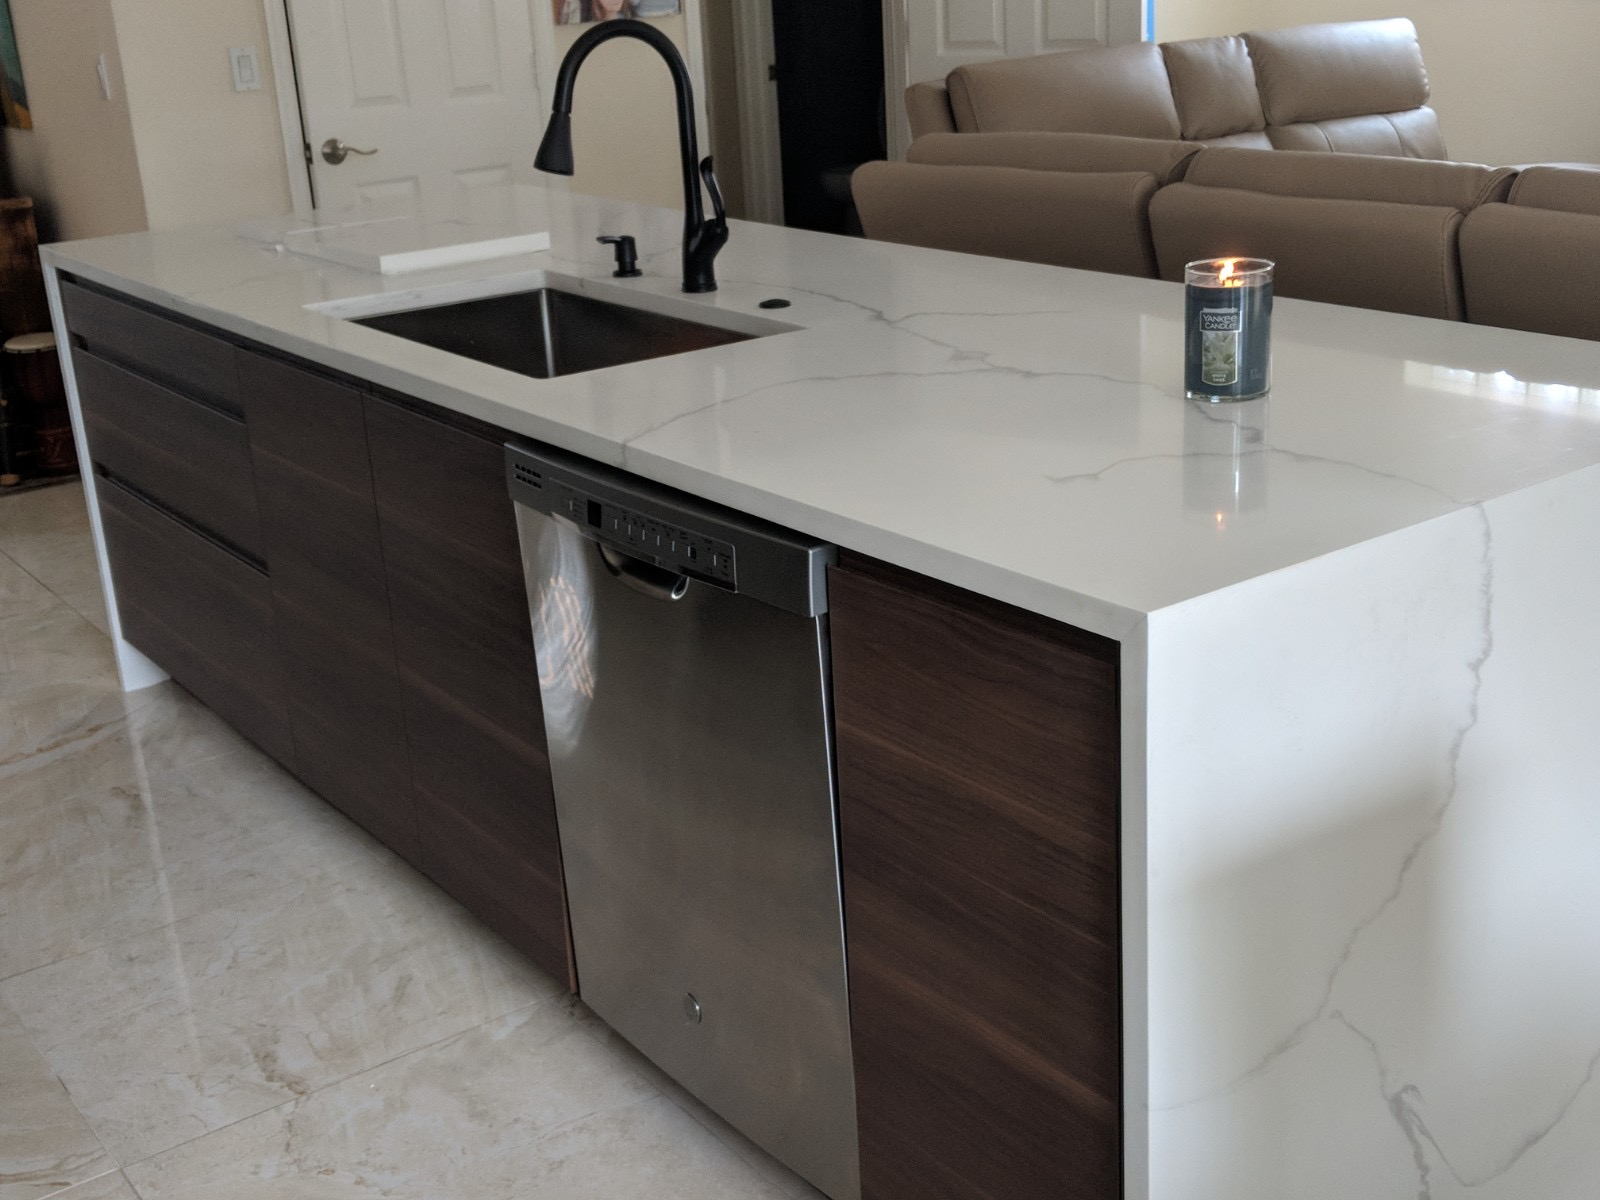 ikea kitchen installer Boca Raton d6